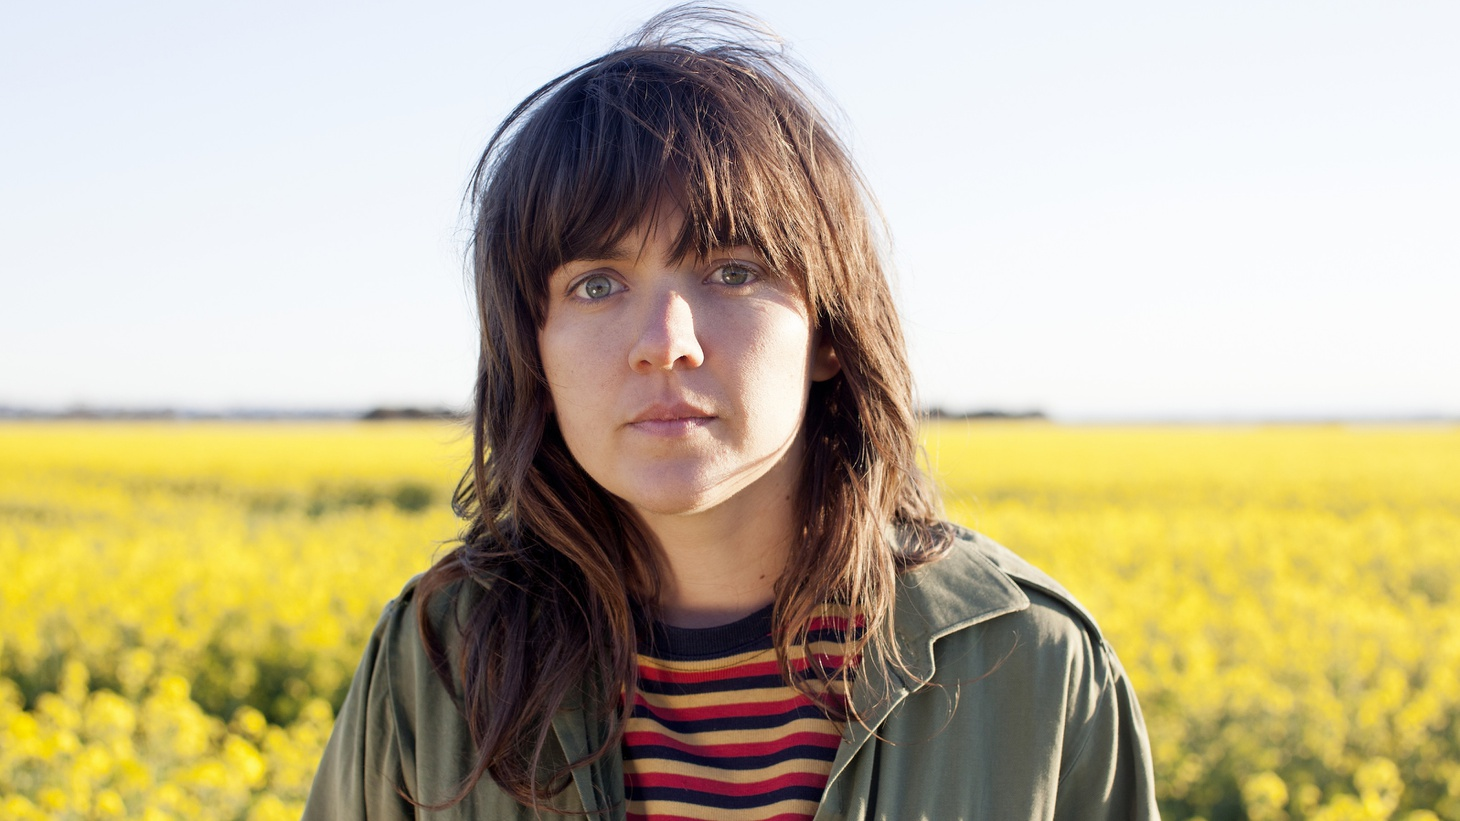 Raucous raw energy fuels Aussie singer and guitarist Courtney Barnett, who is one of the most buzzed about indie artists of the moment.We're thrilled to have her in studio to play songs fromher new album.